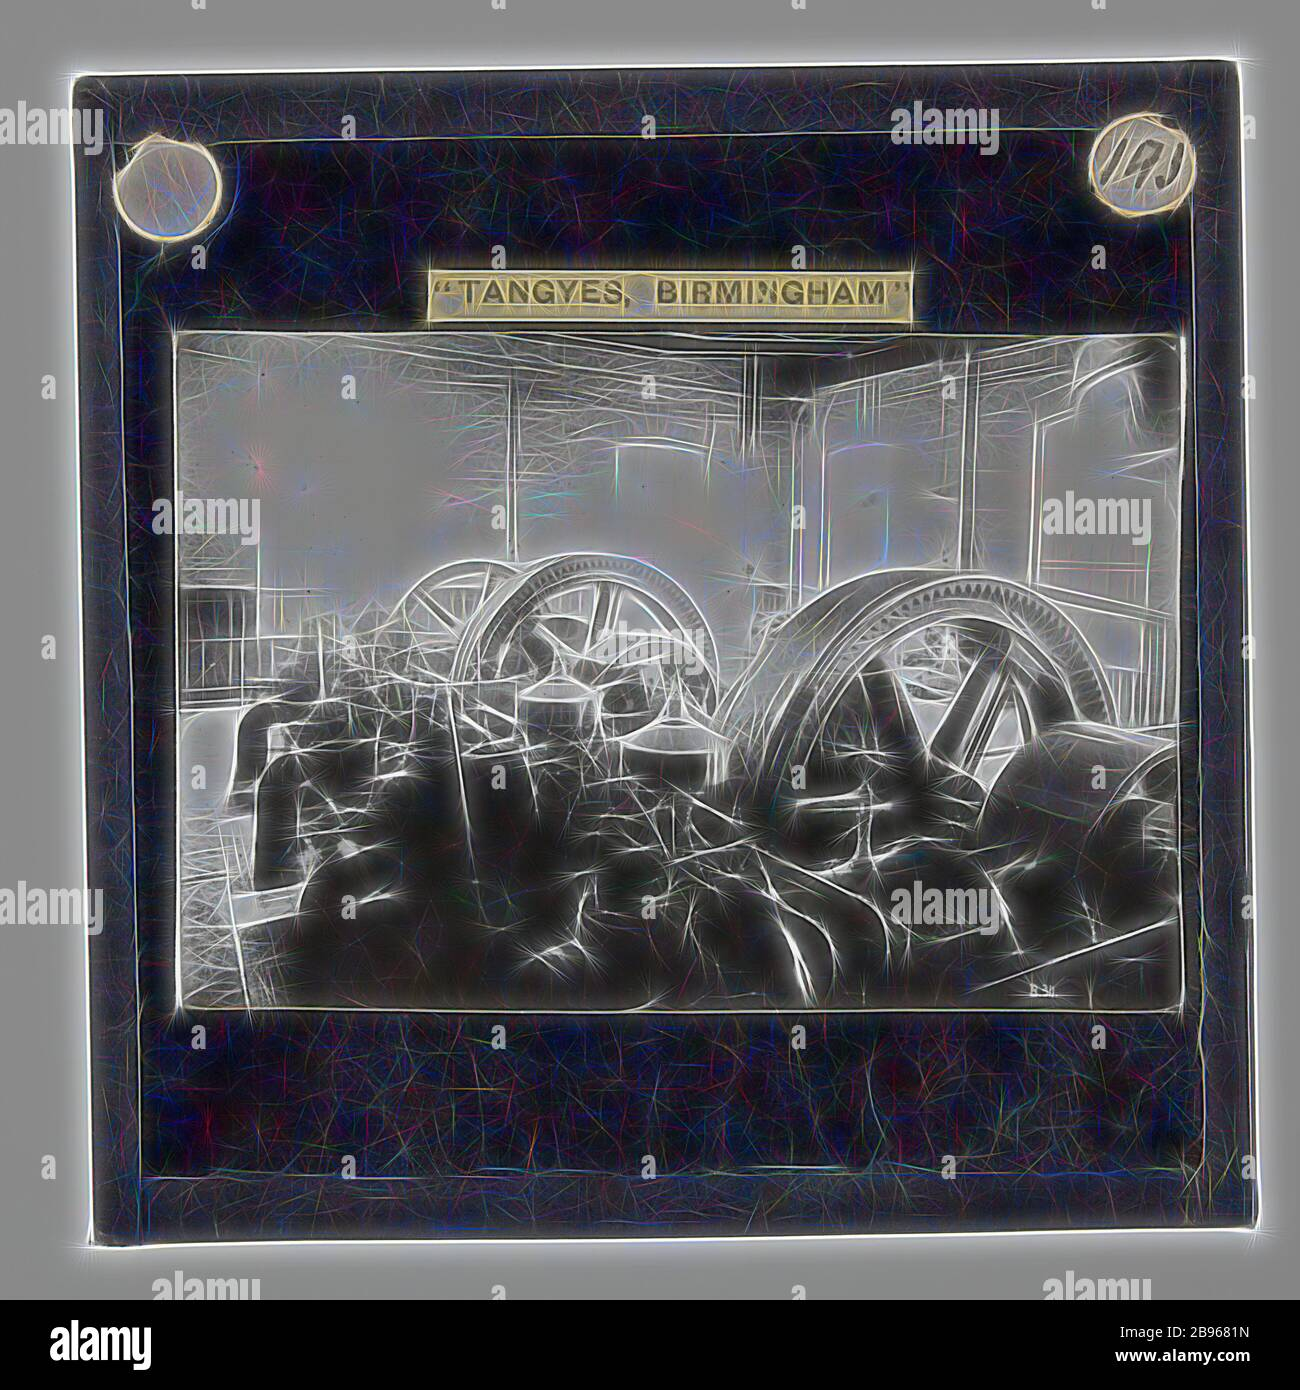 Lantern Slide Tangyes Ltd Powerhouse Gas Engines Circa 1910 One Of 239 Glass Lantern Slides Depicting